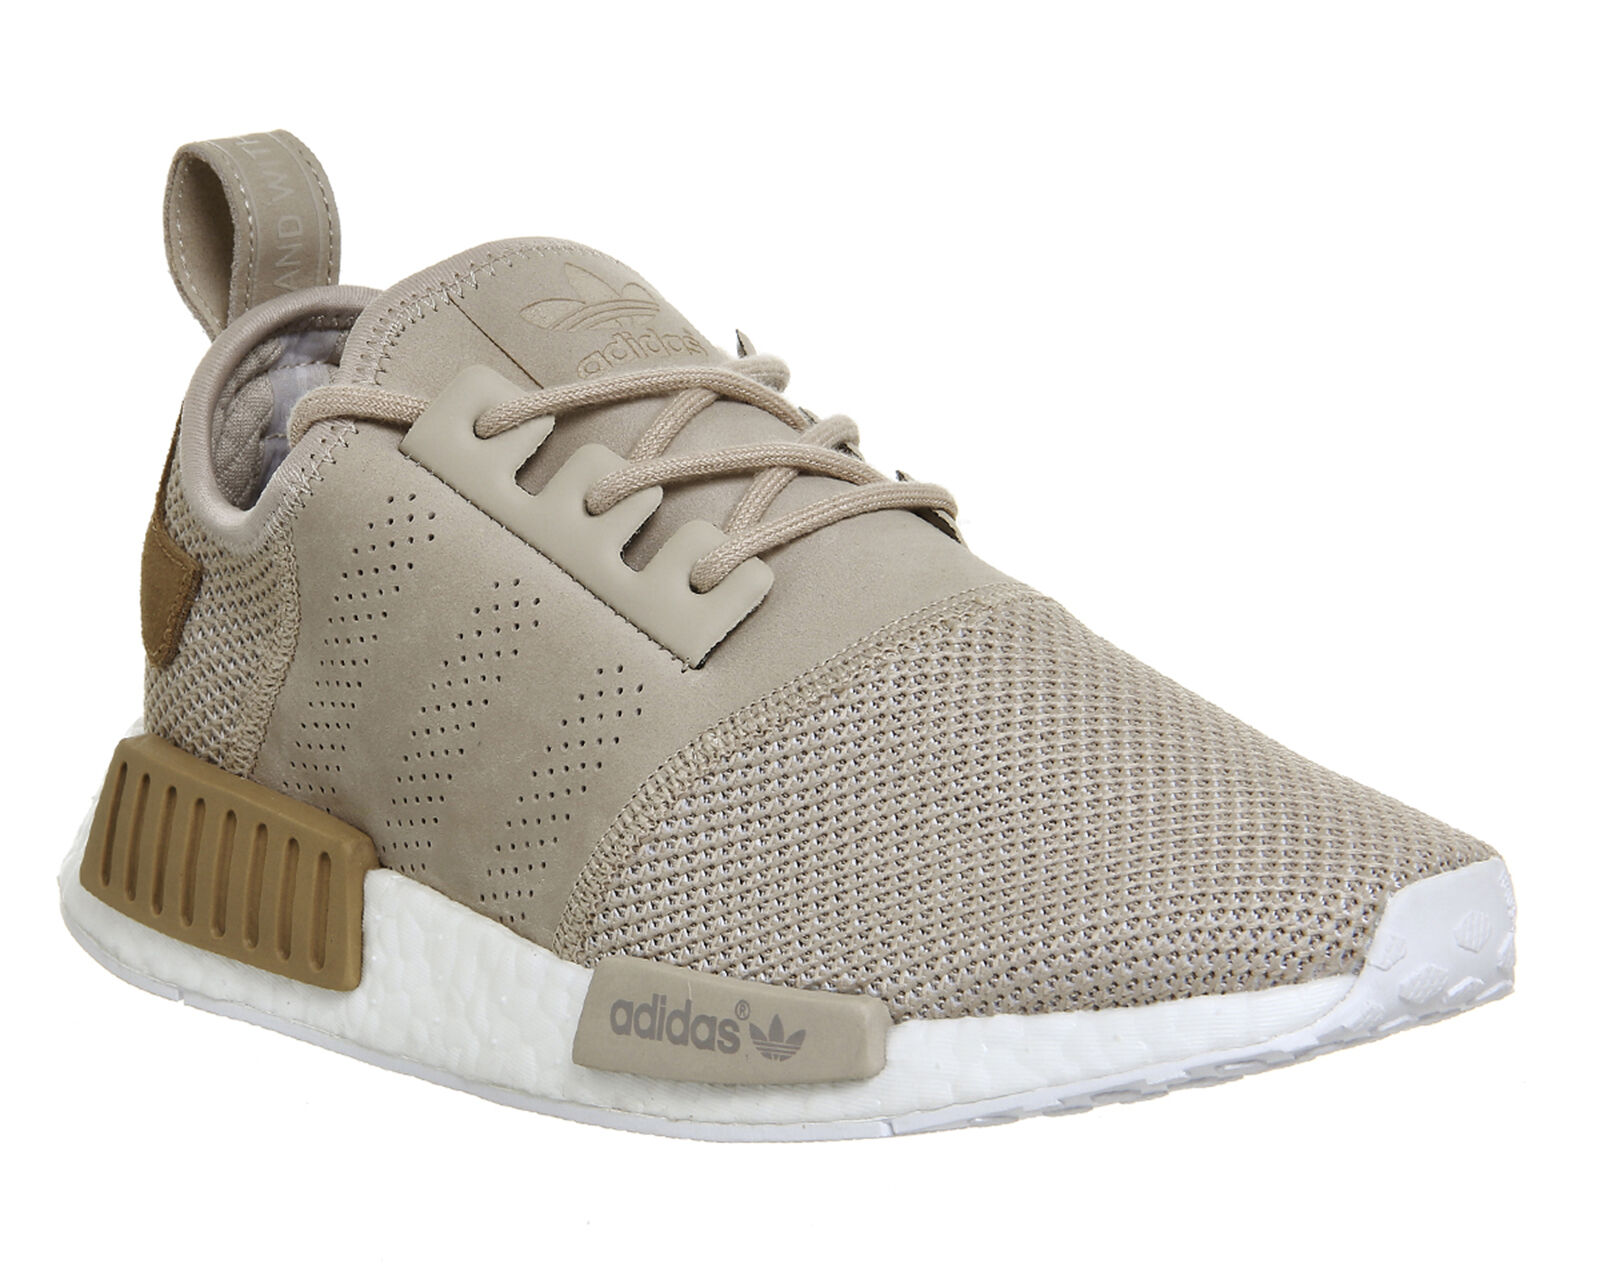 ADIDAS X OFFSPRING NMD R1 DESERT SAND MEN'S WOMEN'S RUNNERS ALL SIZES(BB0736)